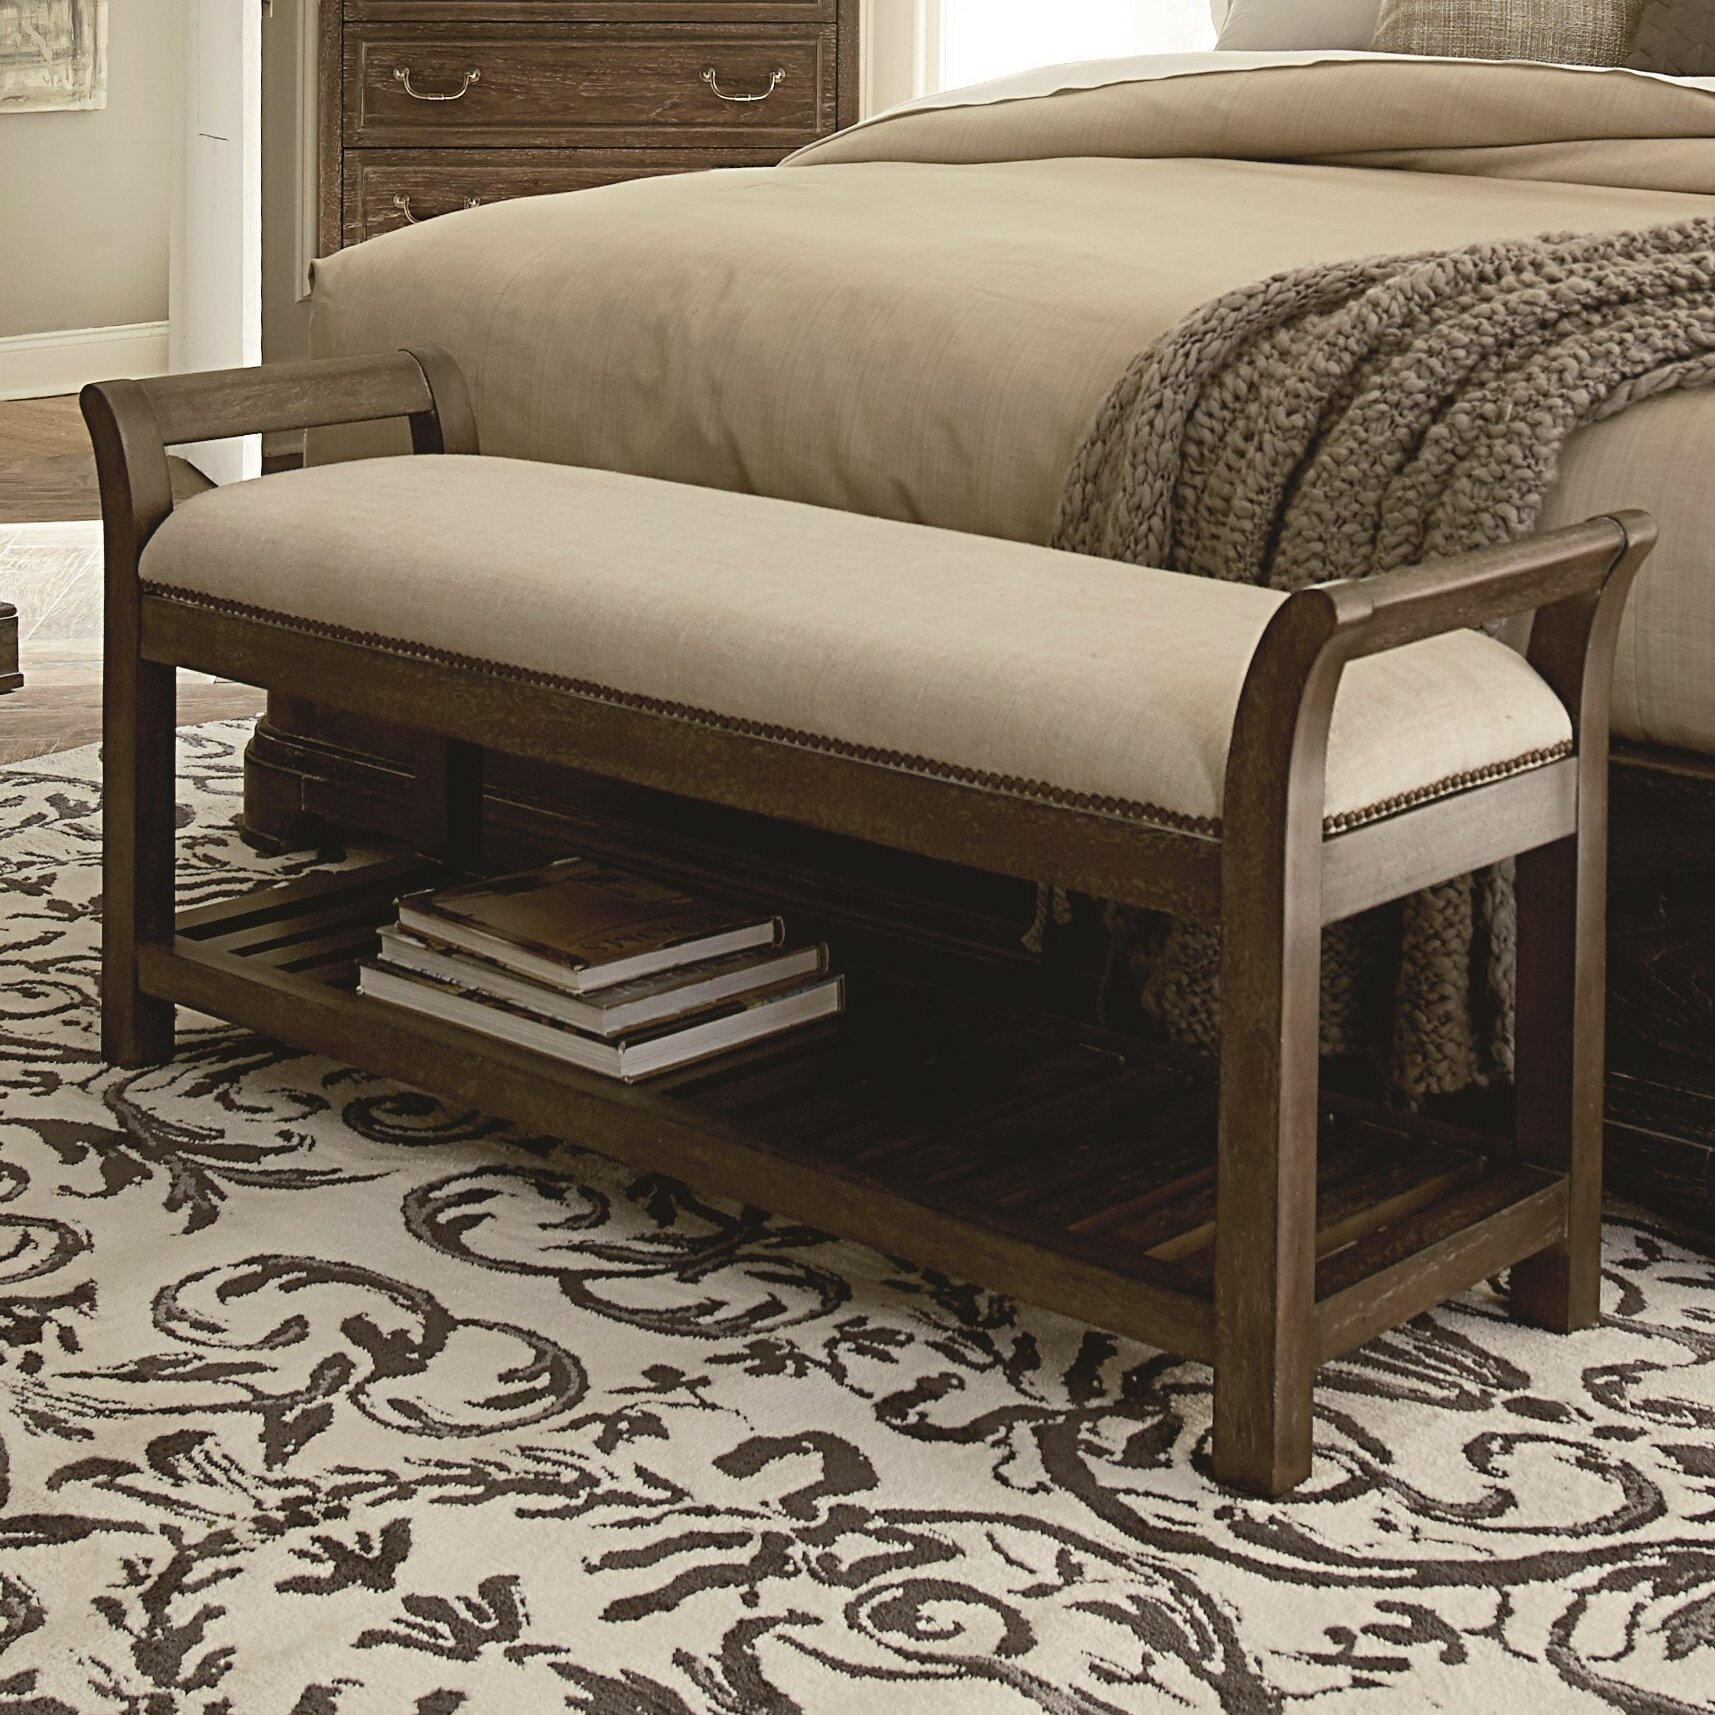 darby home co pond brook upholstered bedroom bench reviews wayfair